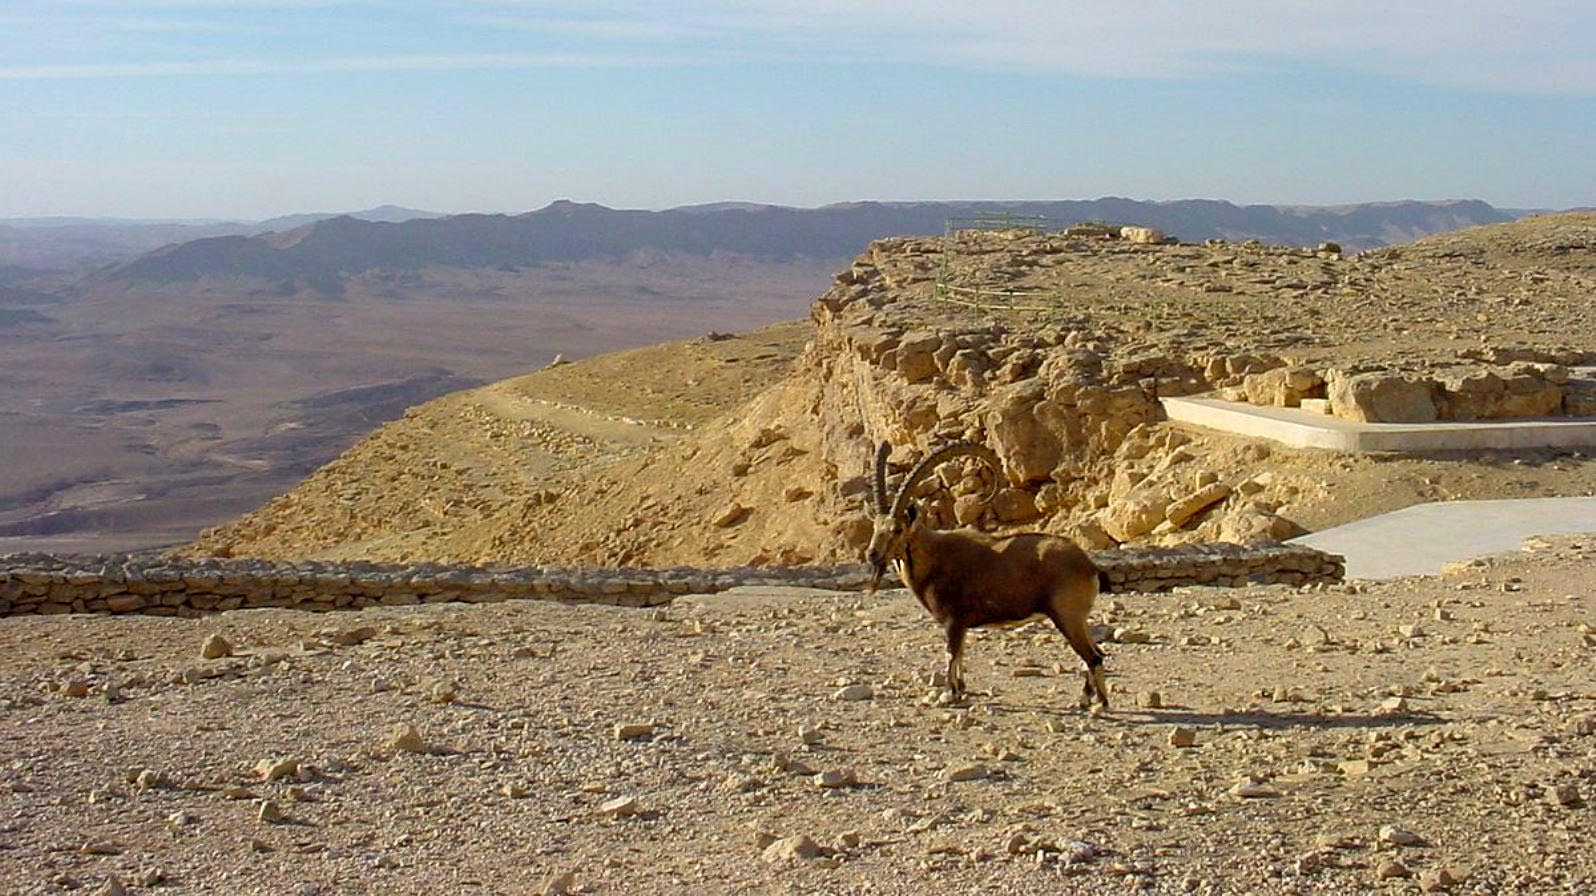 Traveling The Ancient Incense Route In The Negev